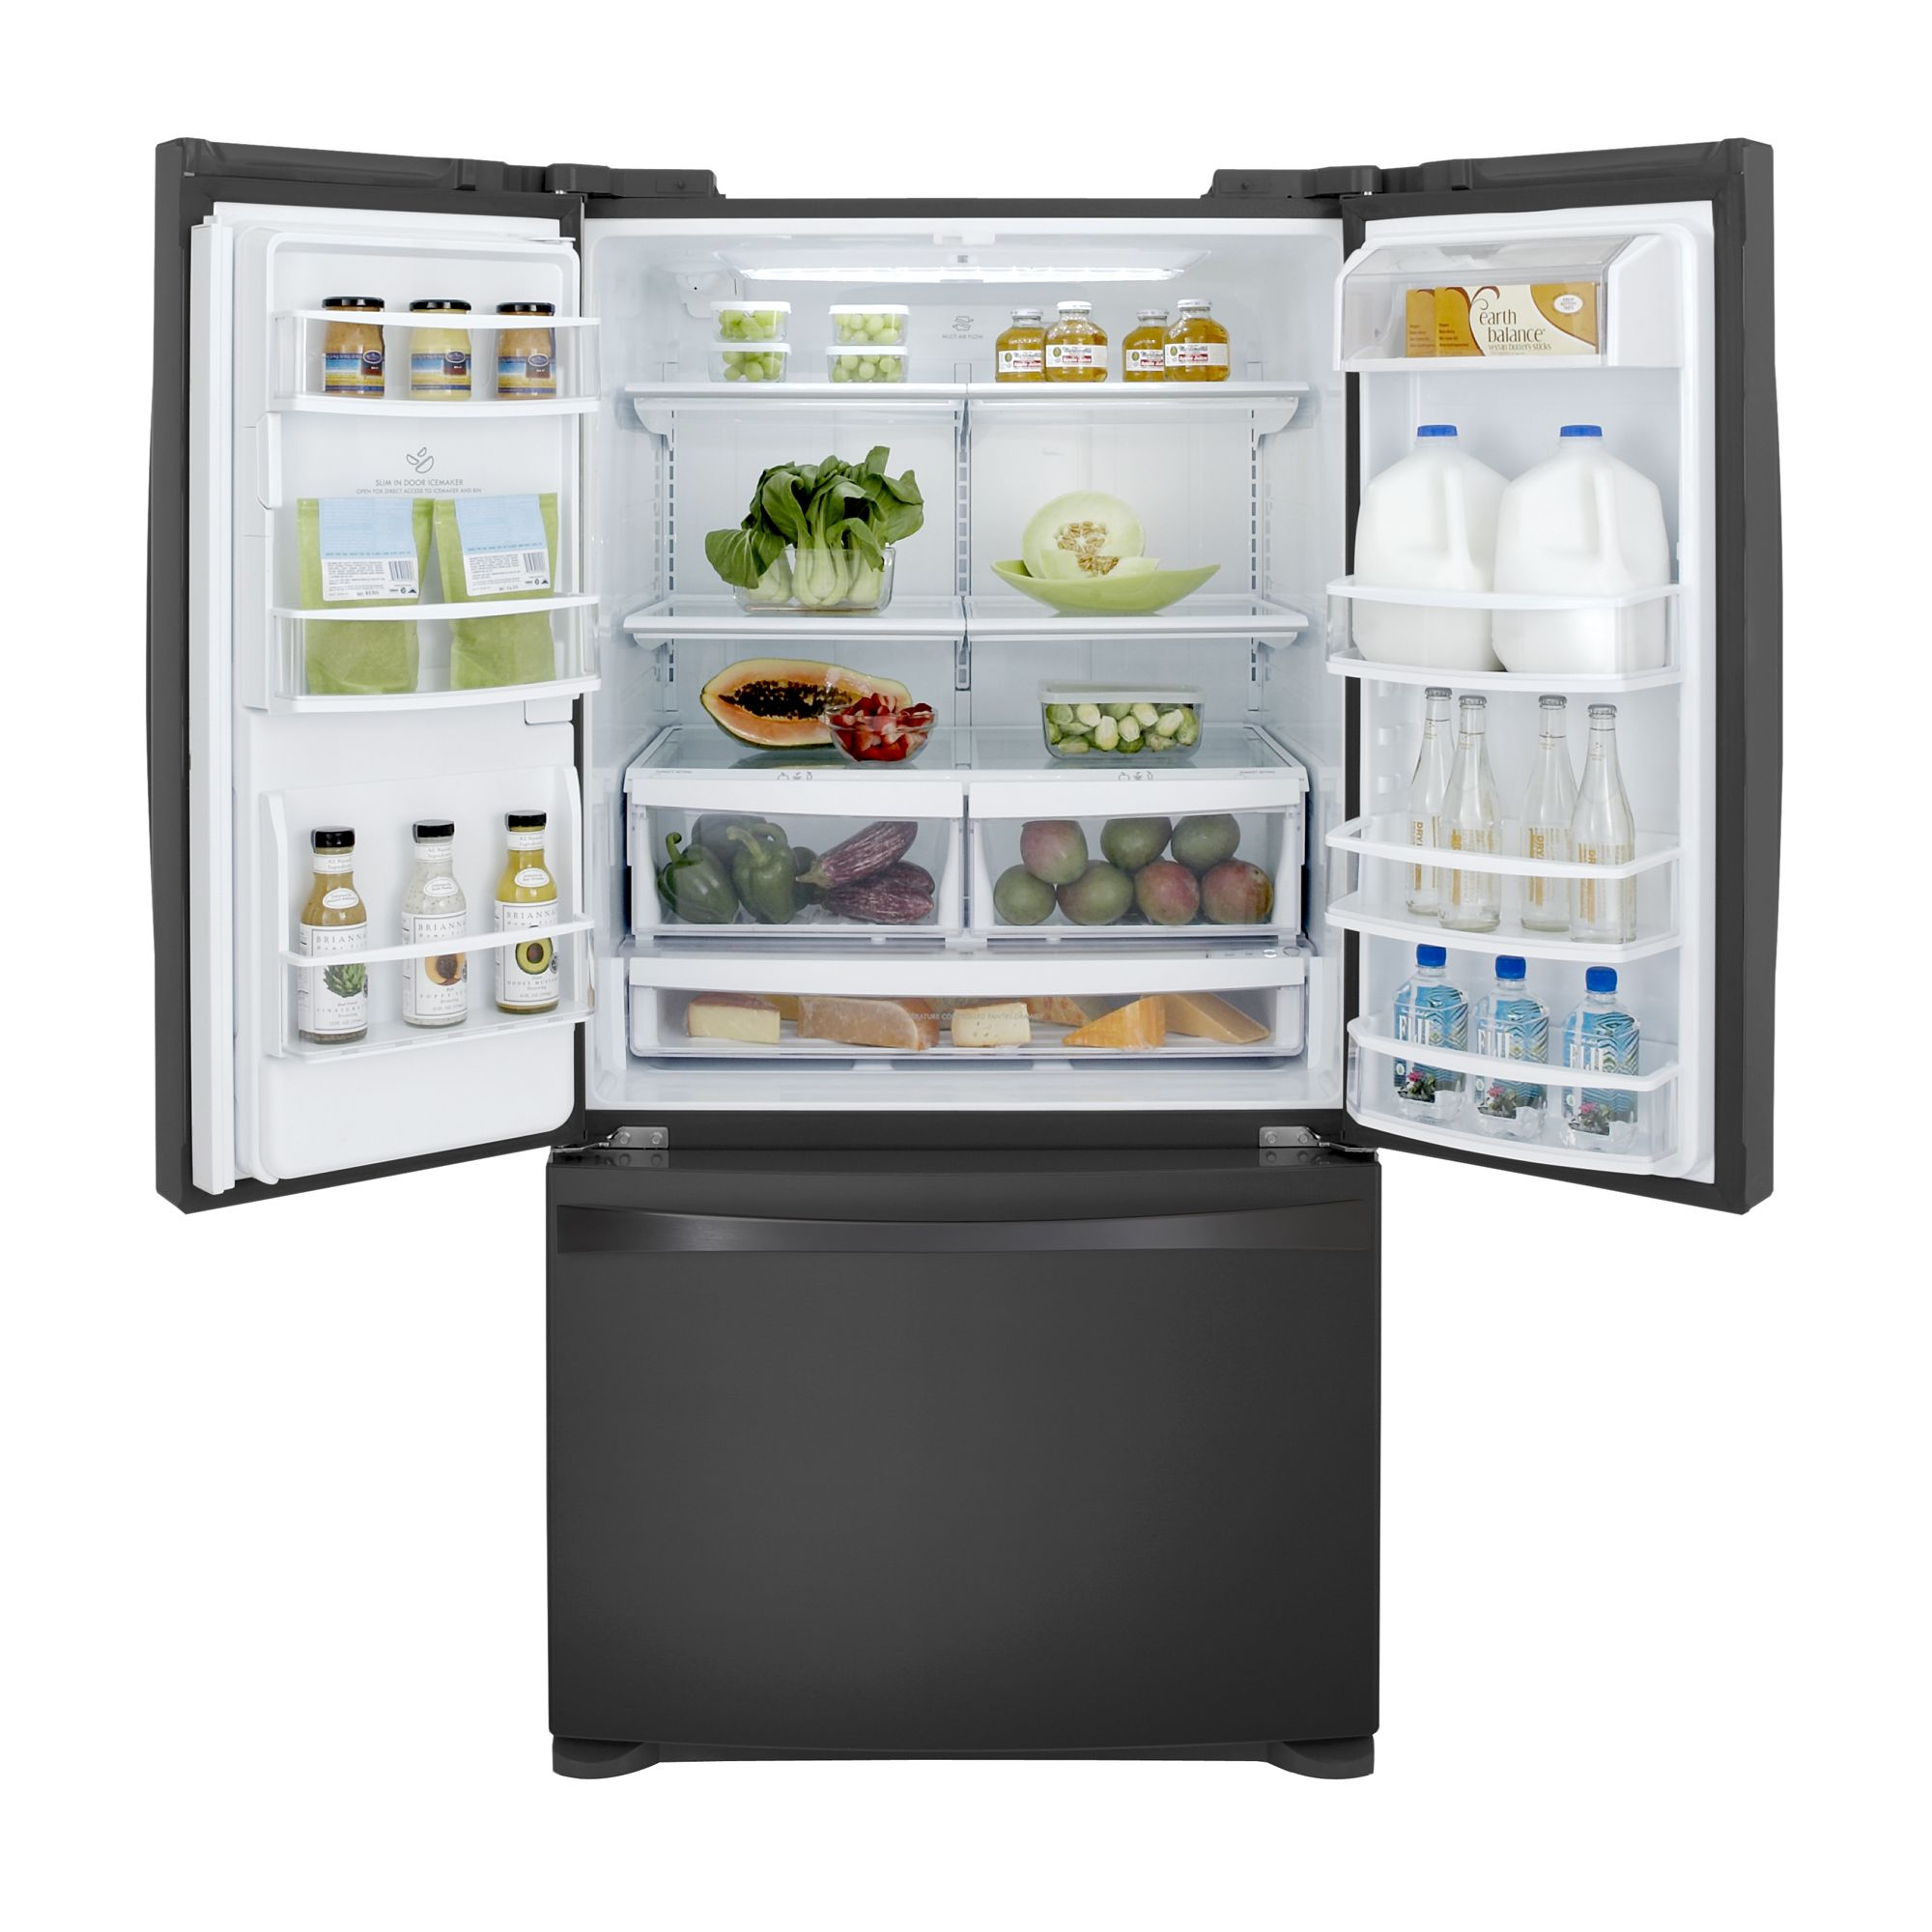 Kenmore Elite 27.6 cu. ft. French Door Bottom-Freezer Refrigerator - Black